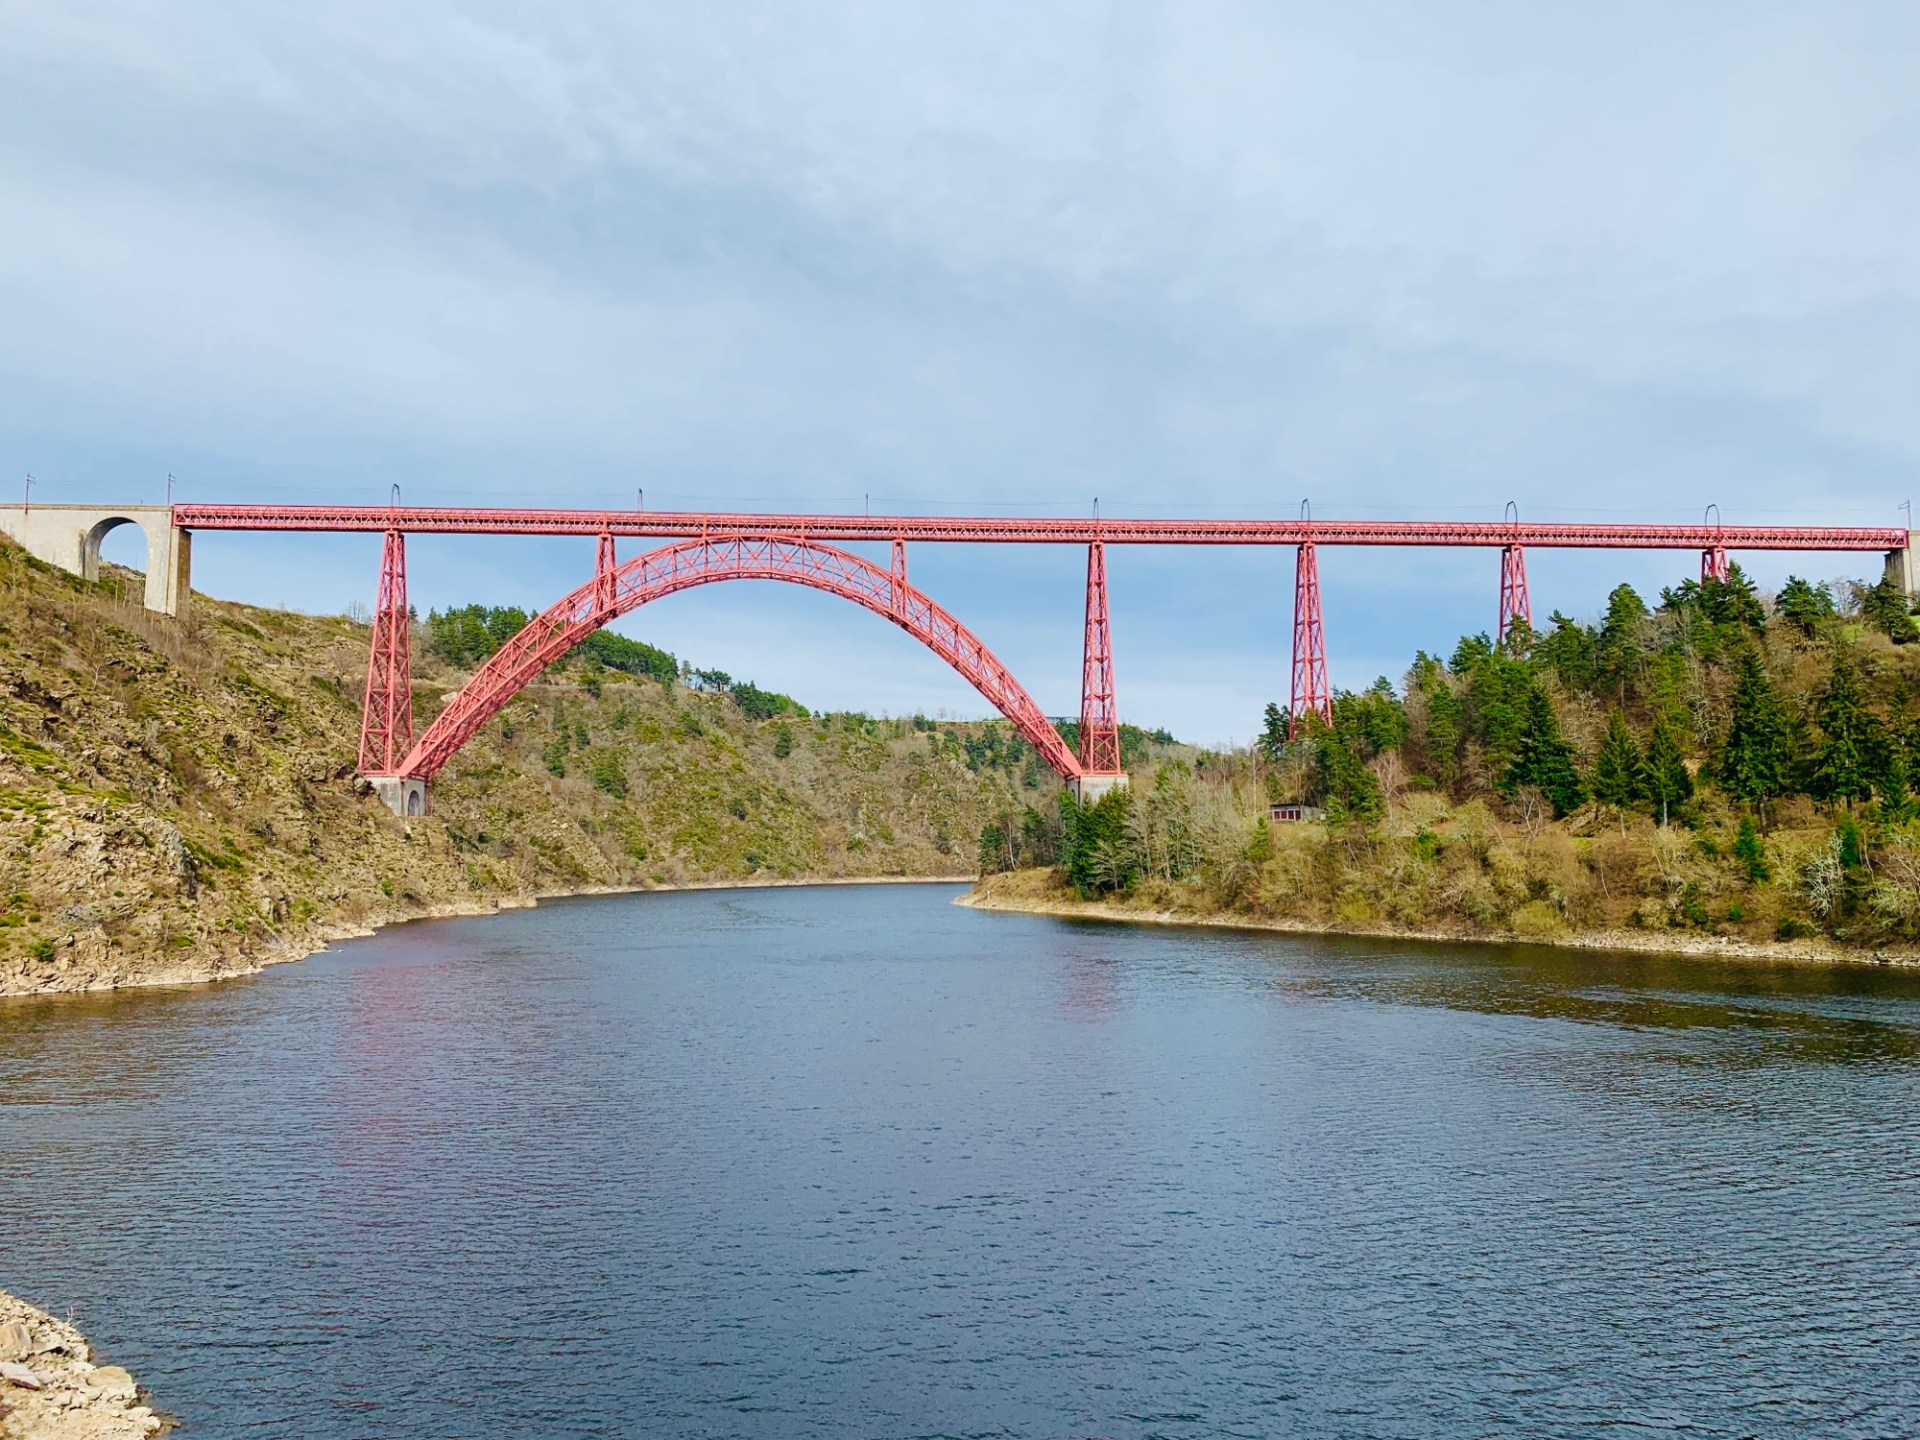 Garabit viaduct viewed from the river